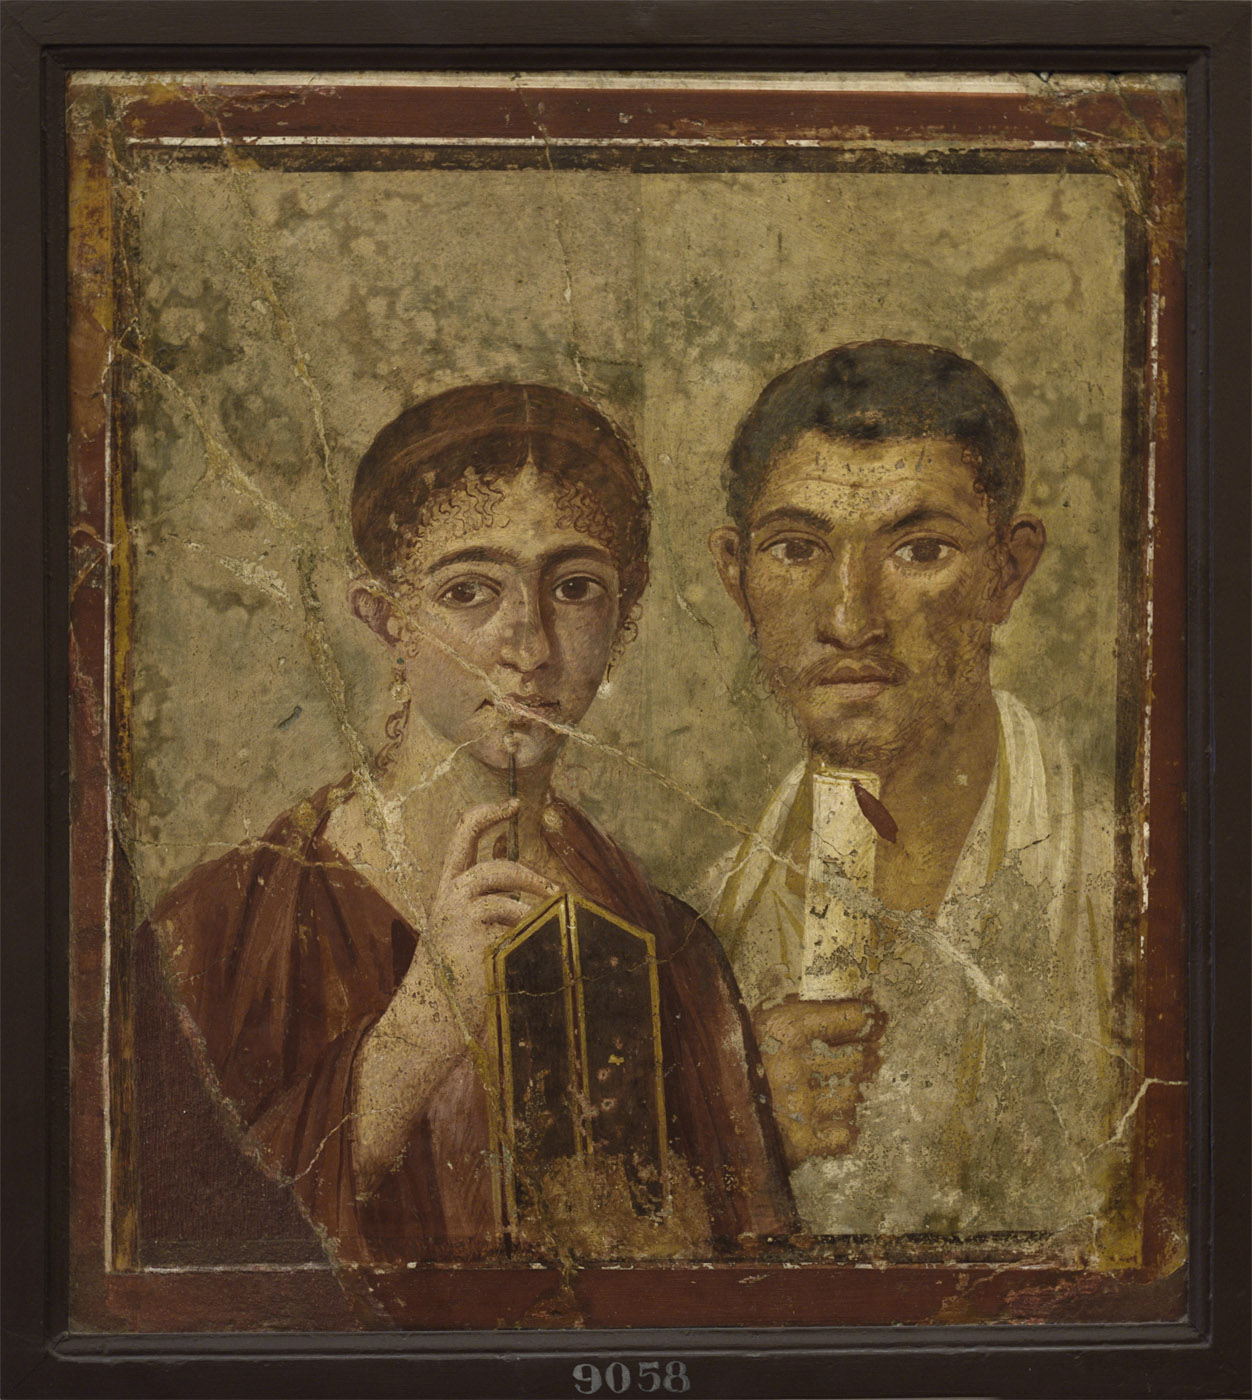 Portrait of the baker Terentius Neo and his wife. Fresco from Pompeii (House of Terentius Neo, VII, 2, 6). Inv. No. 9058. Naples, National Archaeological Museum